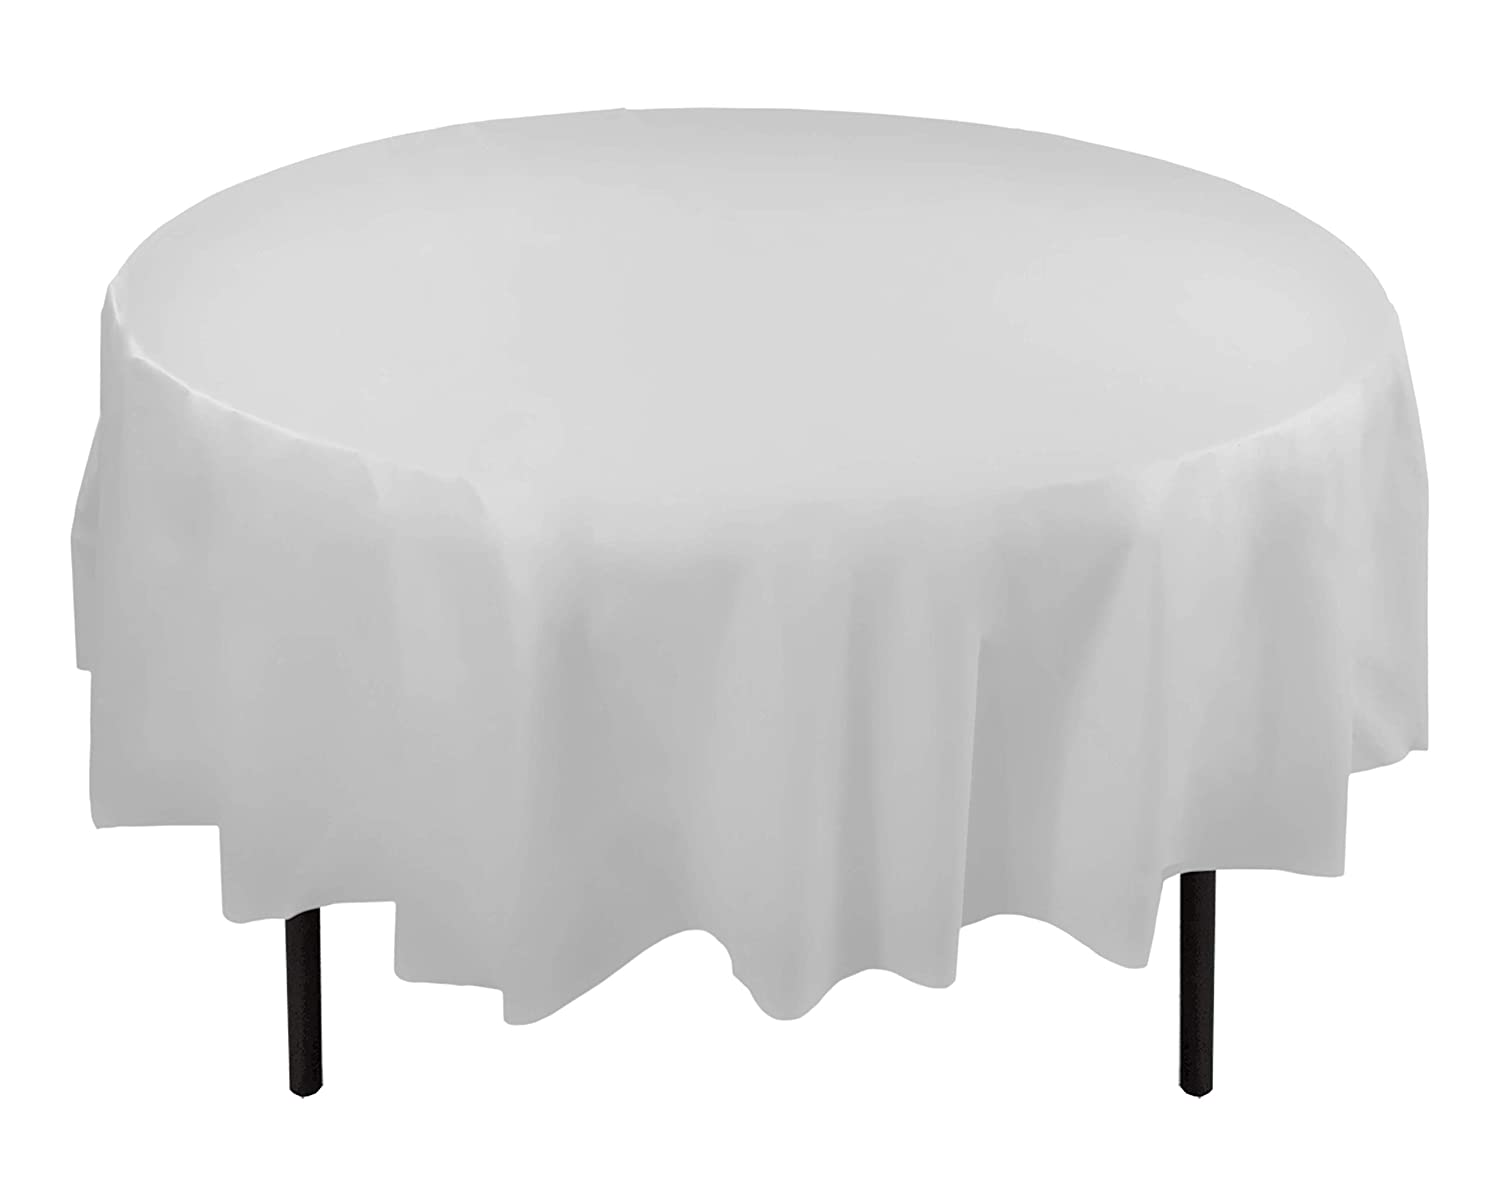 Round Table With Tablecloth.12 Pack Premium Plastic Tablecloth 84in Round Table Cover White